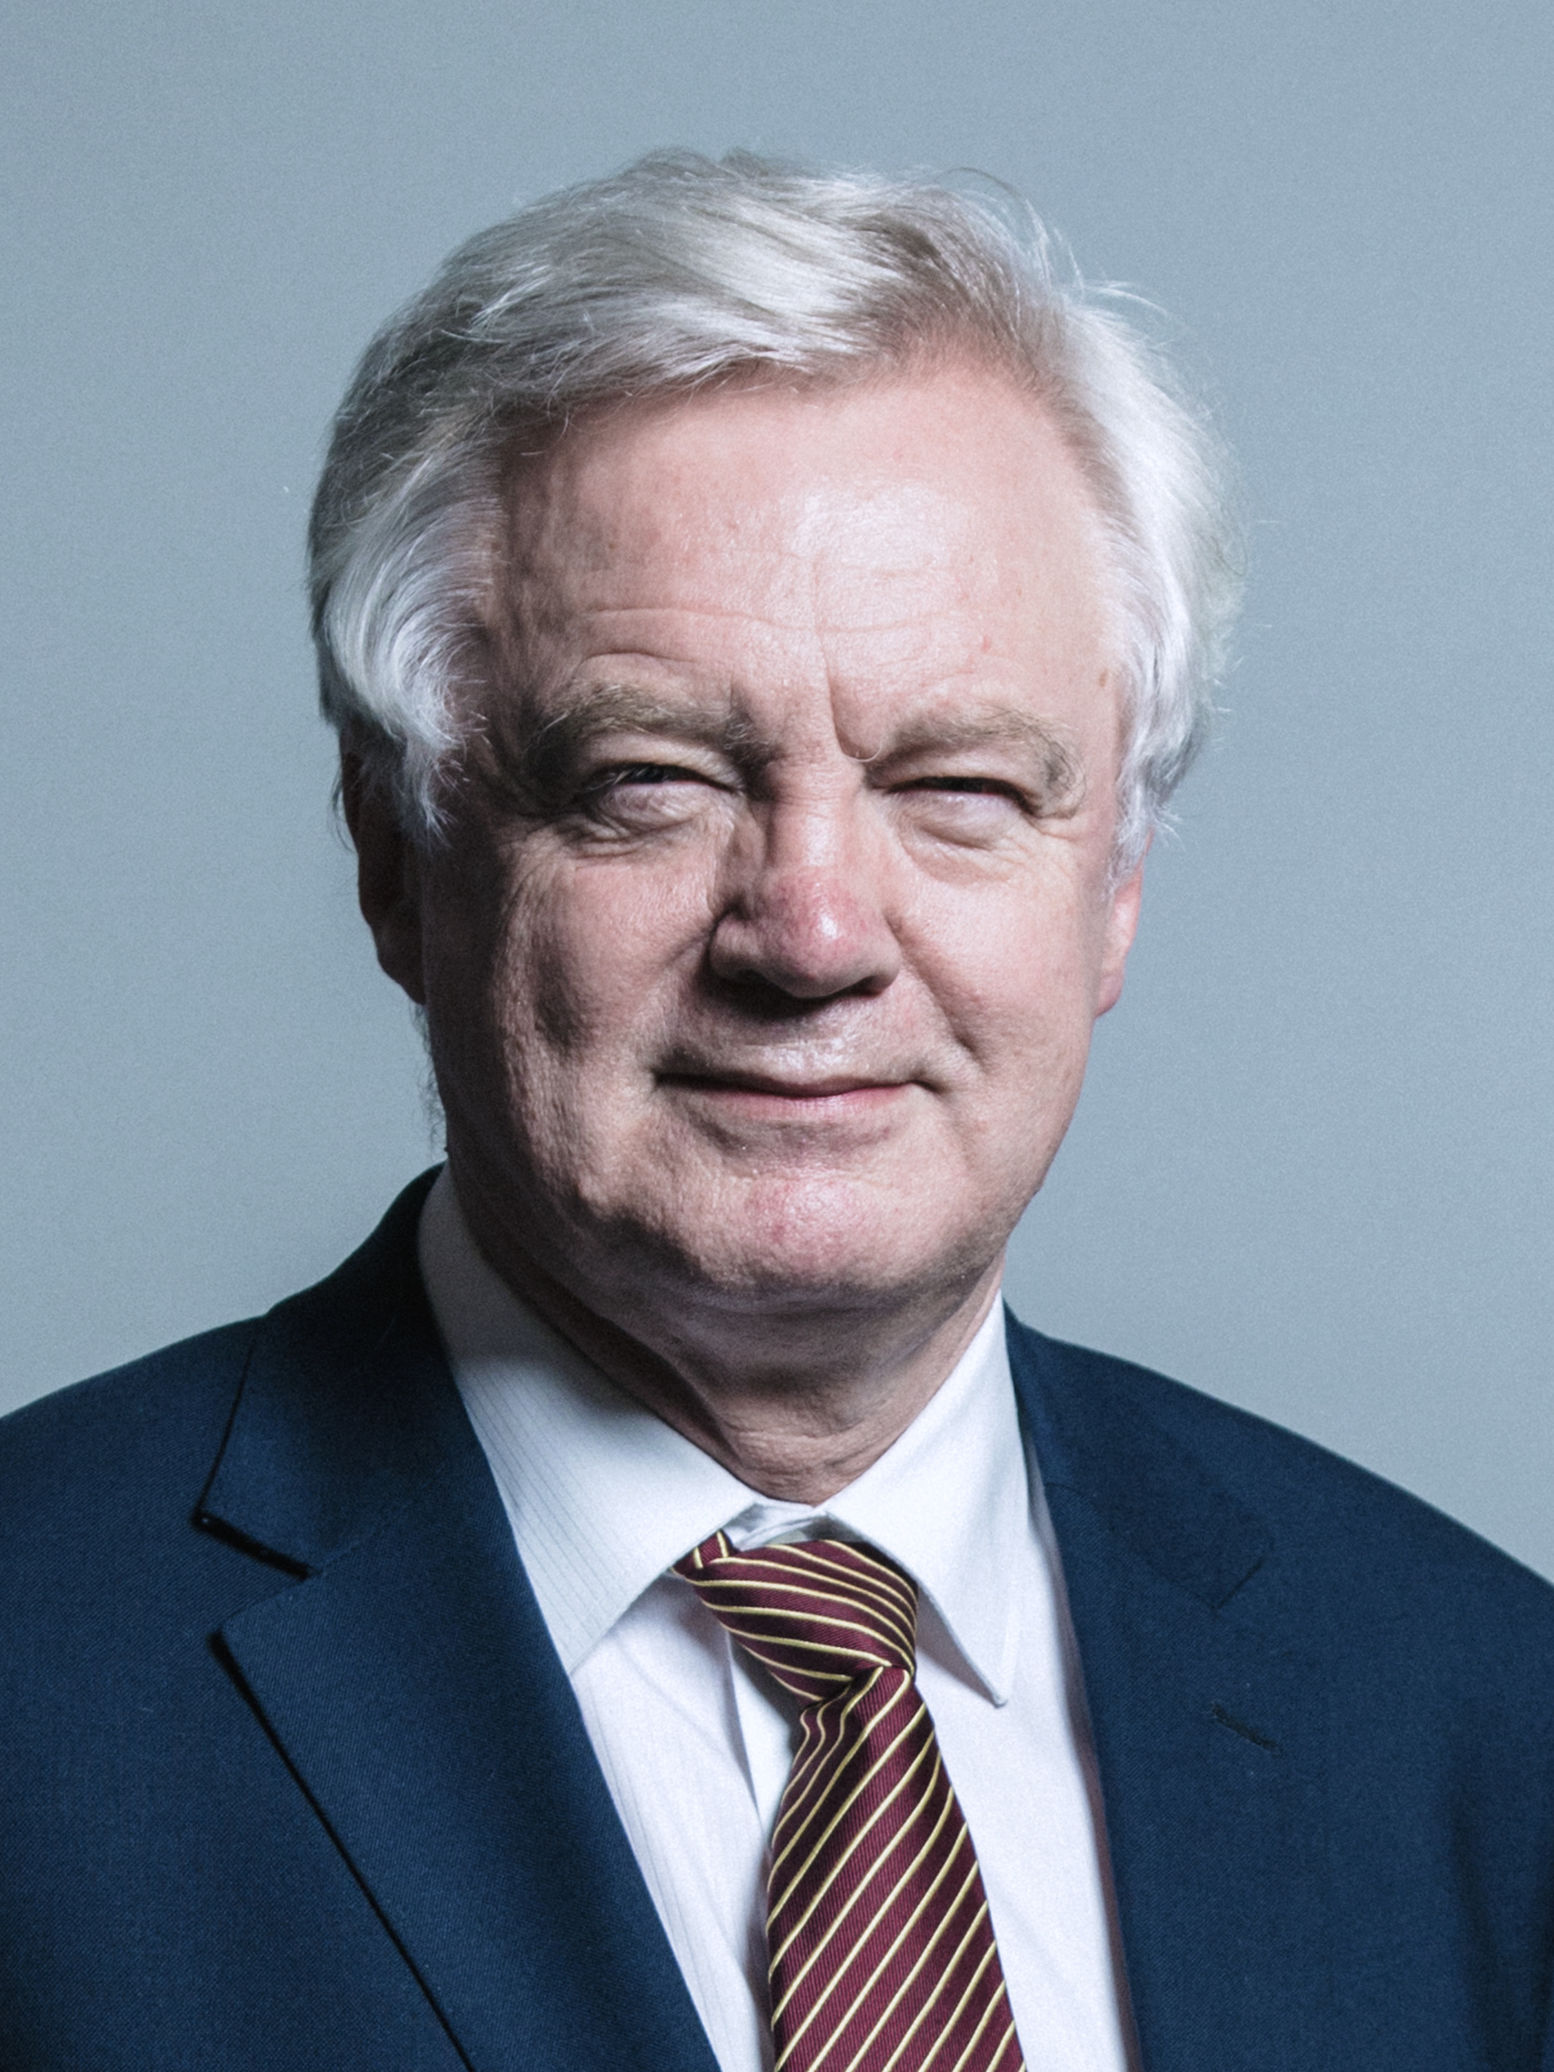 David Davis – 2021 Statement on Freedom of Speech in Universities